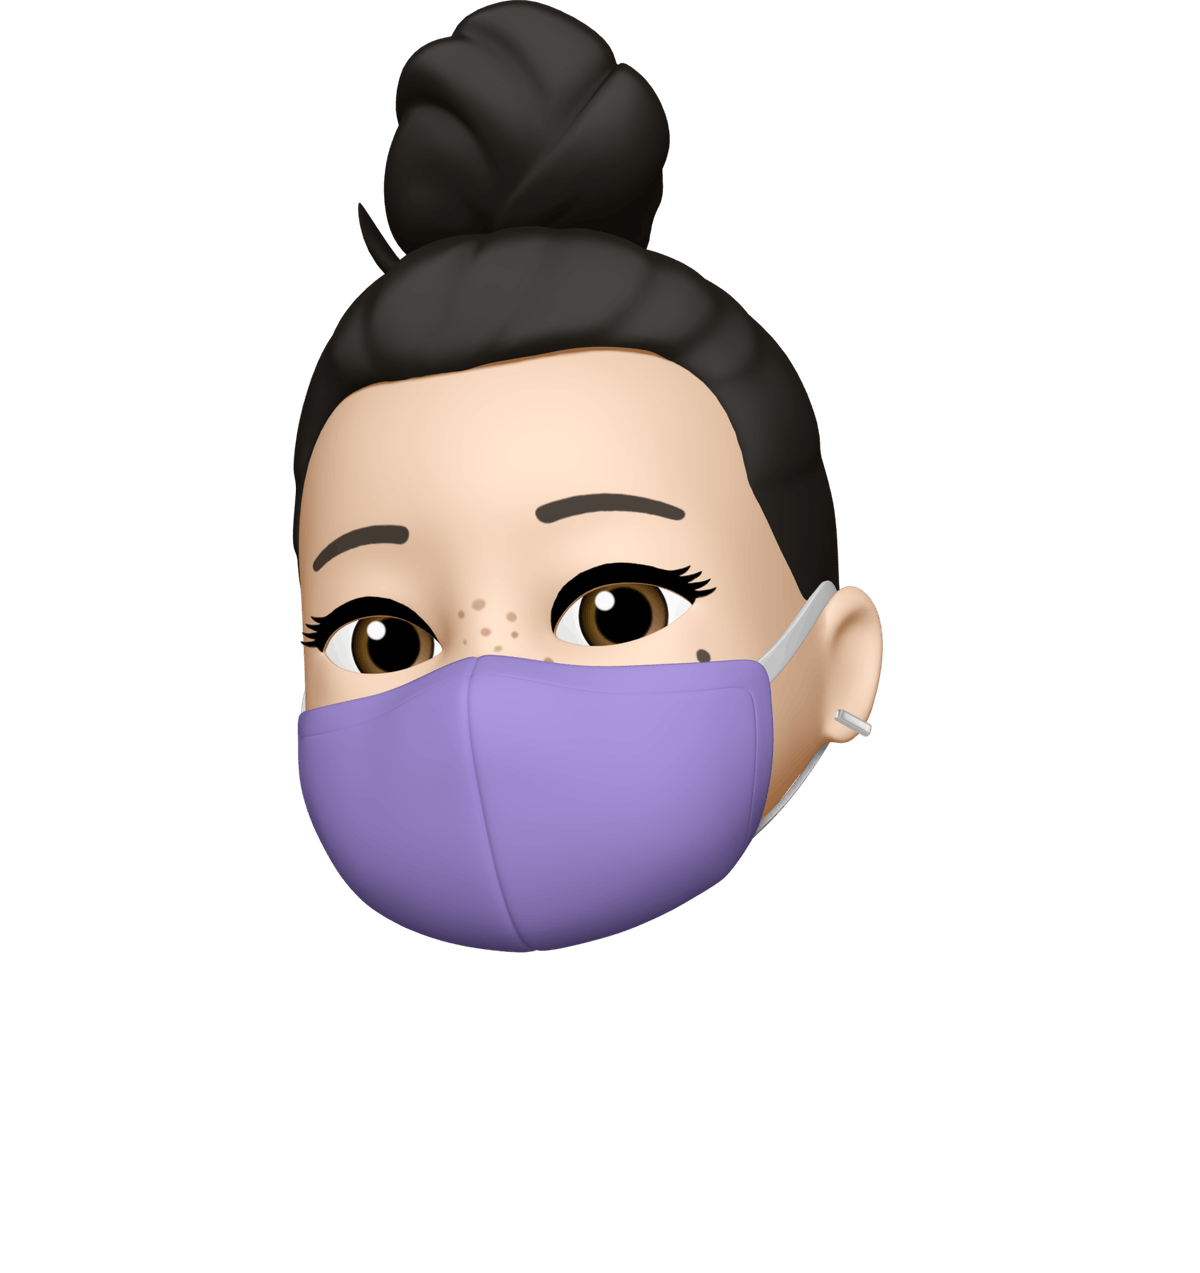 Apple's new emojis and Memojis for iOS 14 include face masks in a few colors.